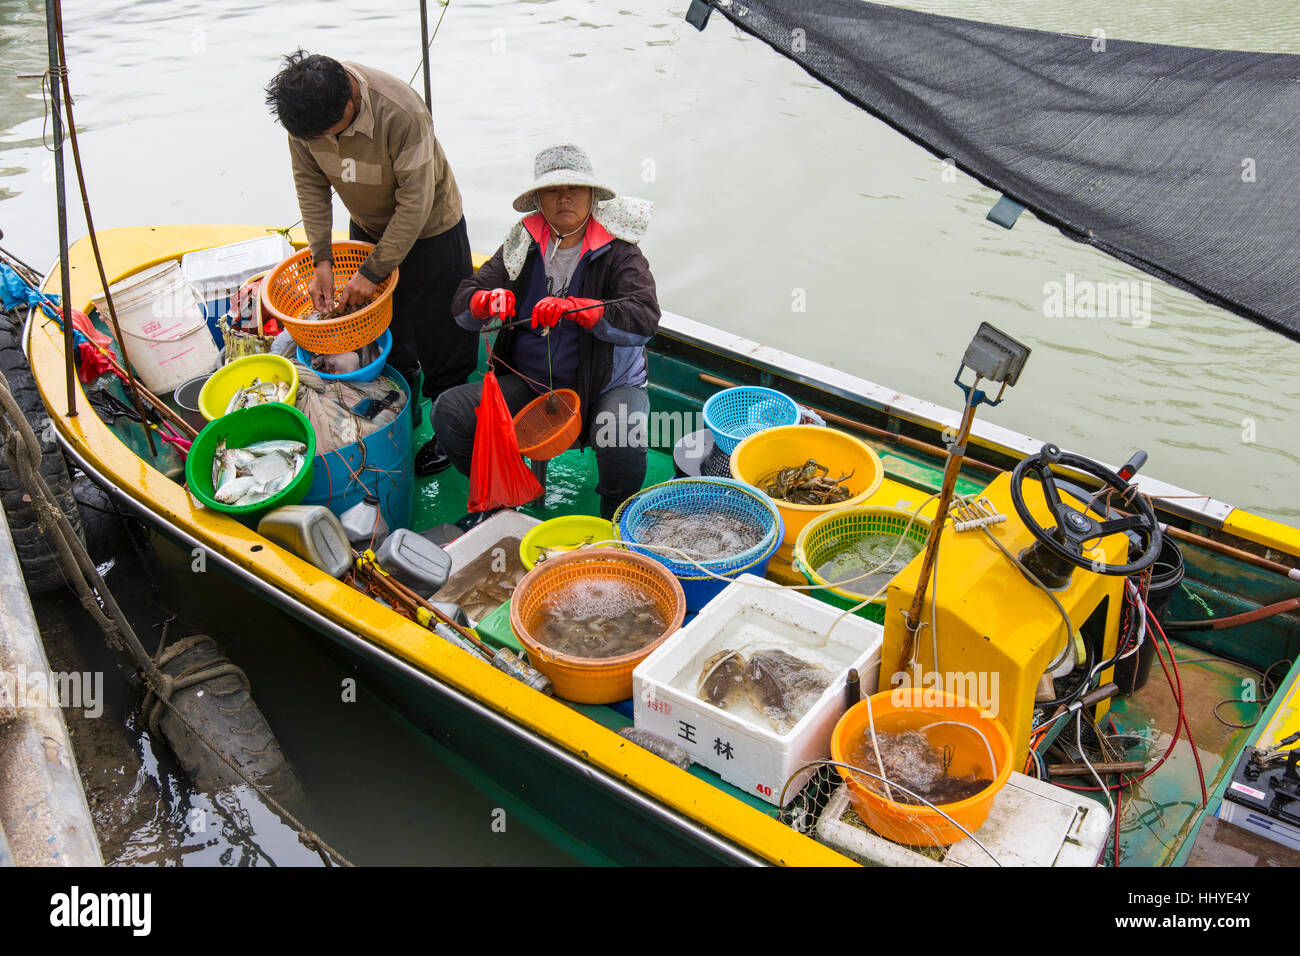 while fishermen sell the fish on their boat in the village of Tai O, Hong Kong - Stock Image